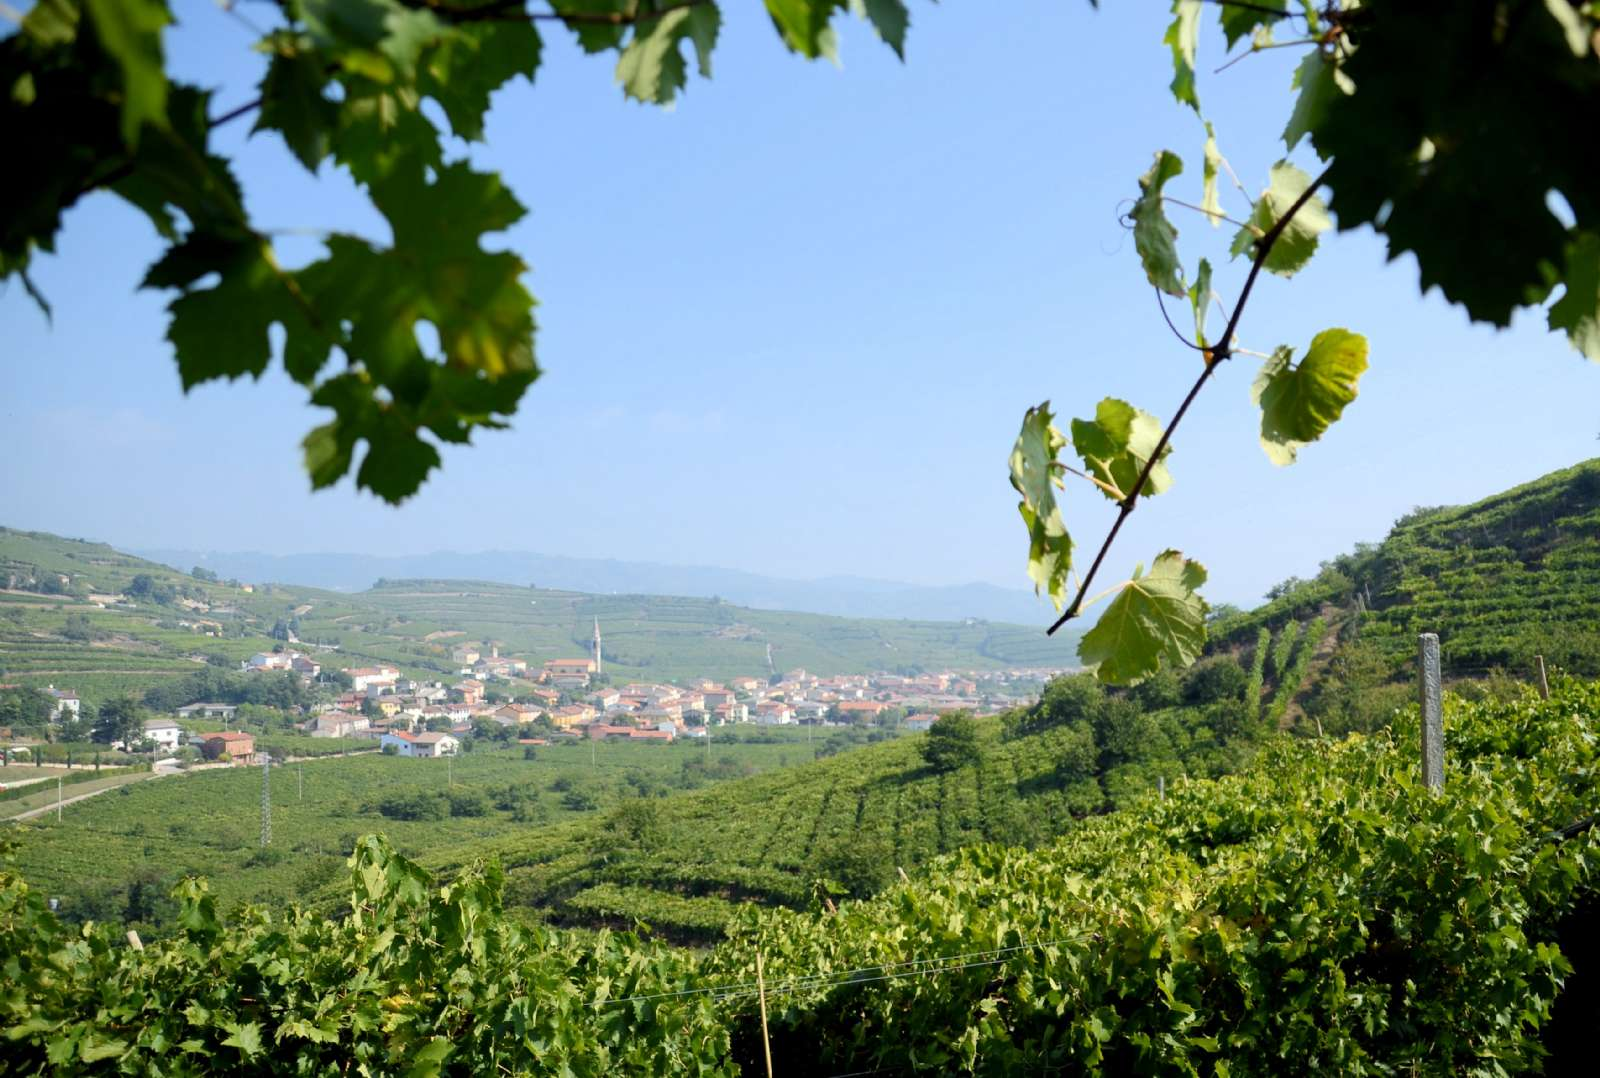 Fine interaction between vineyards and villages